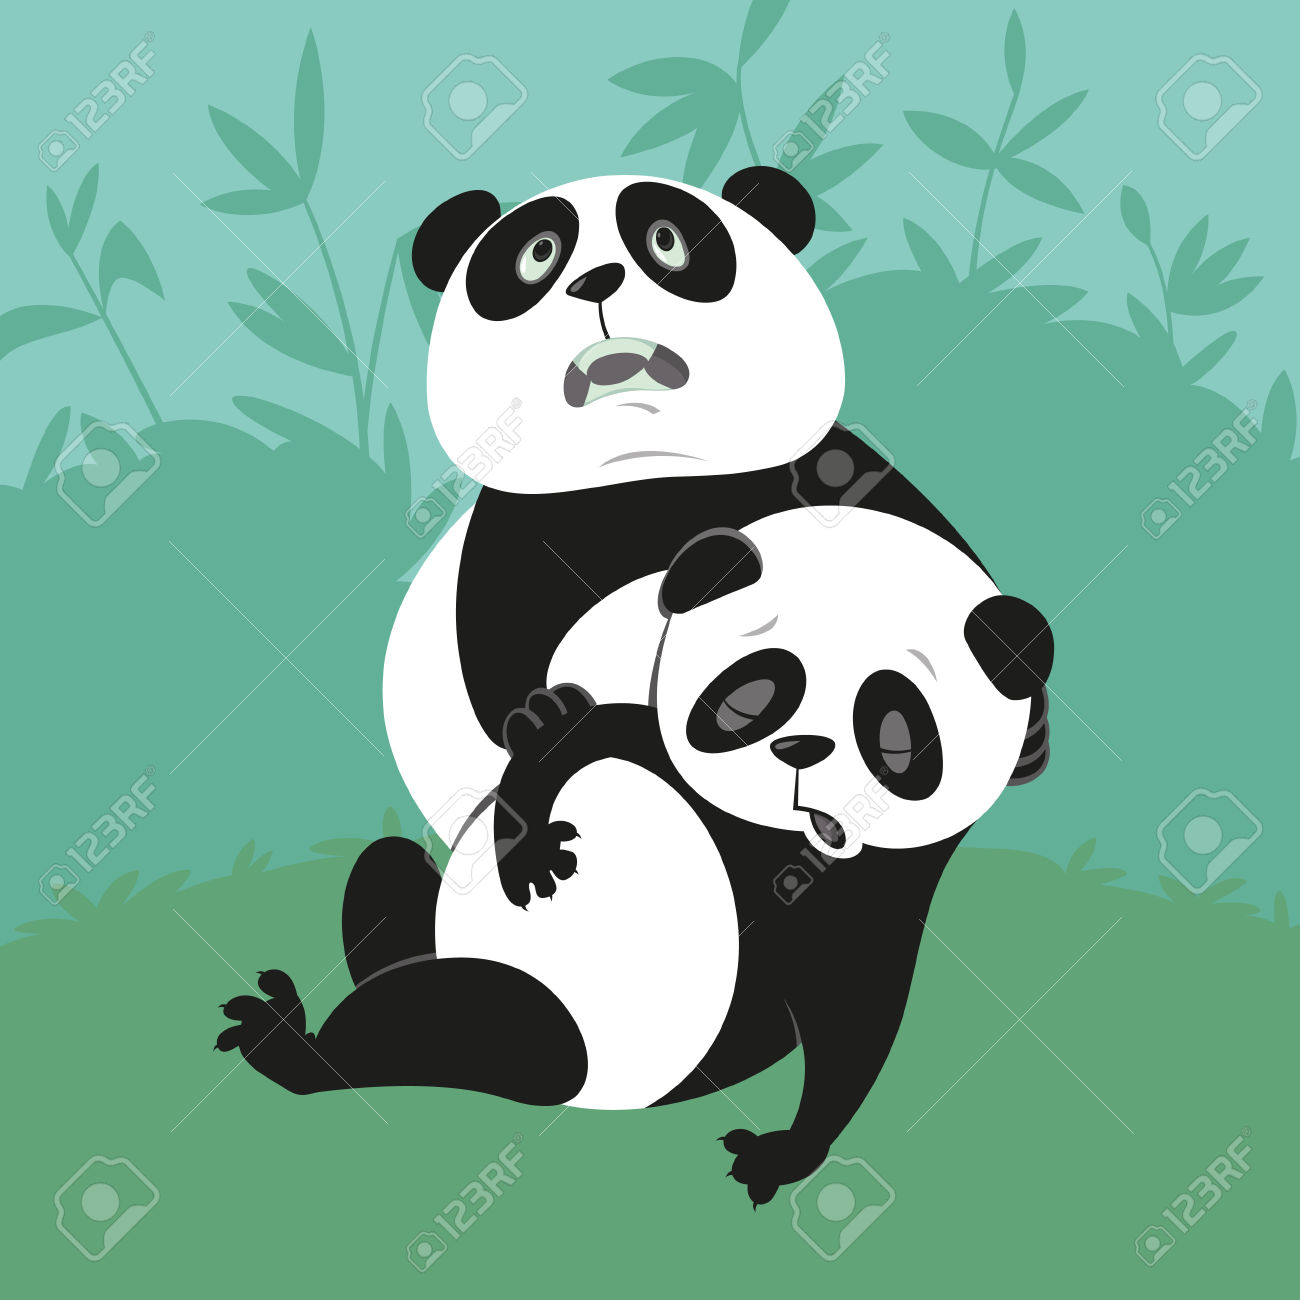 Panda With A Dying Friend, Illustration Of Endangered Animals.